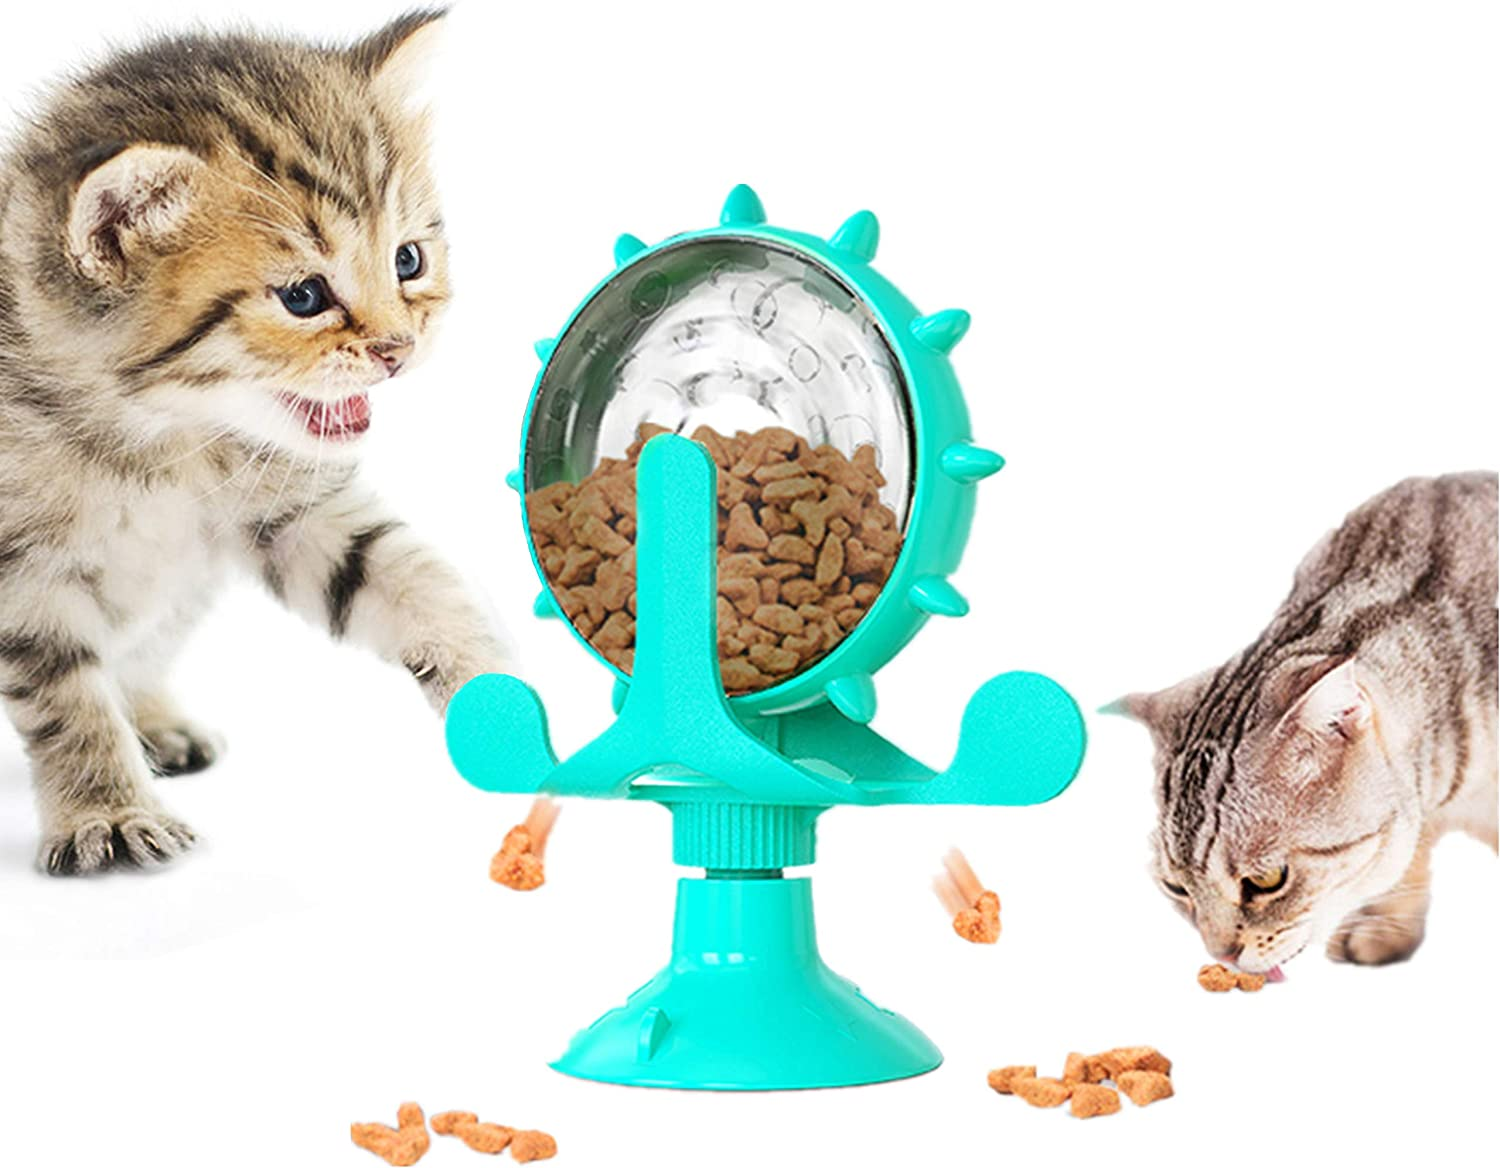 SEEALVIN Windmill Cat Toy,Pet Food Dispenser Cat Game Toys Turntable Snack Feeder with Suction Cup Slow Feeder Toy for Cat and Dog Pet Interactive Toys Rolling Cats and Dogs Food Leaker Toy (Blue)